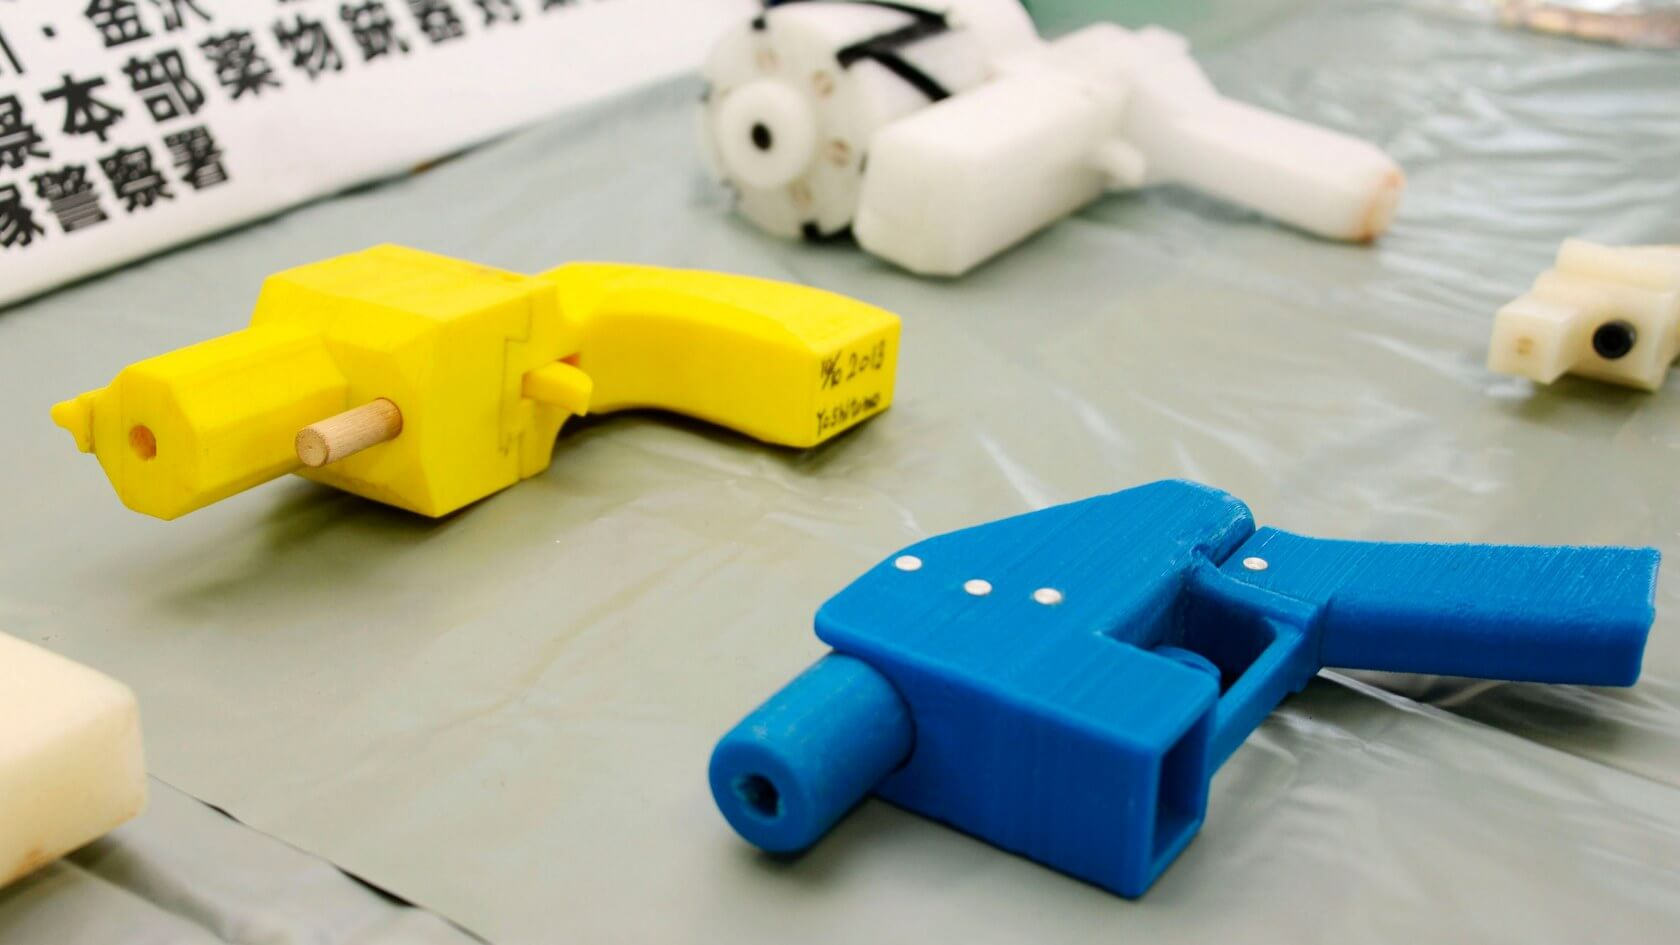 Judge temporarily blocks download of 3D-printed plastic gun plans